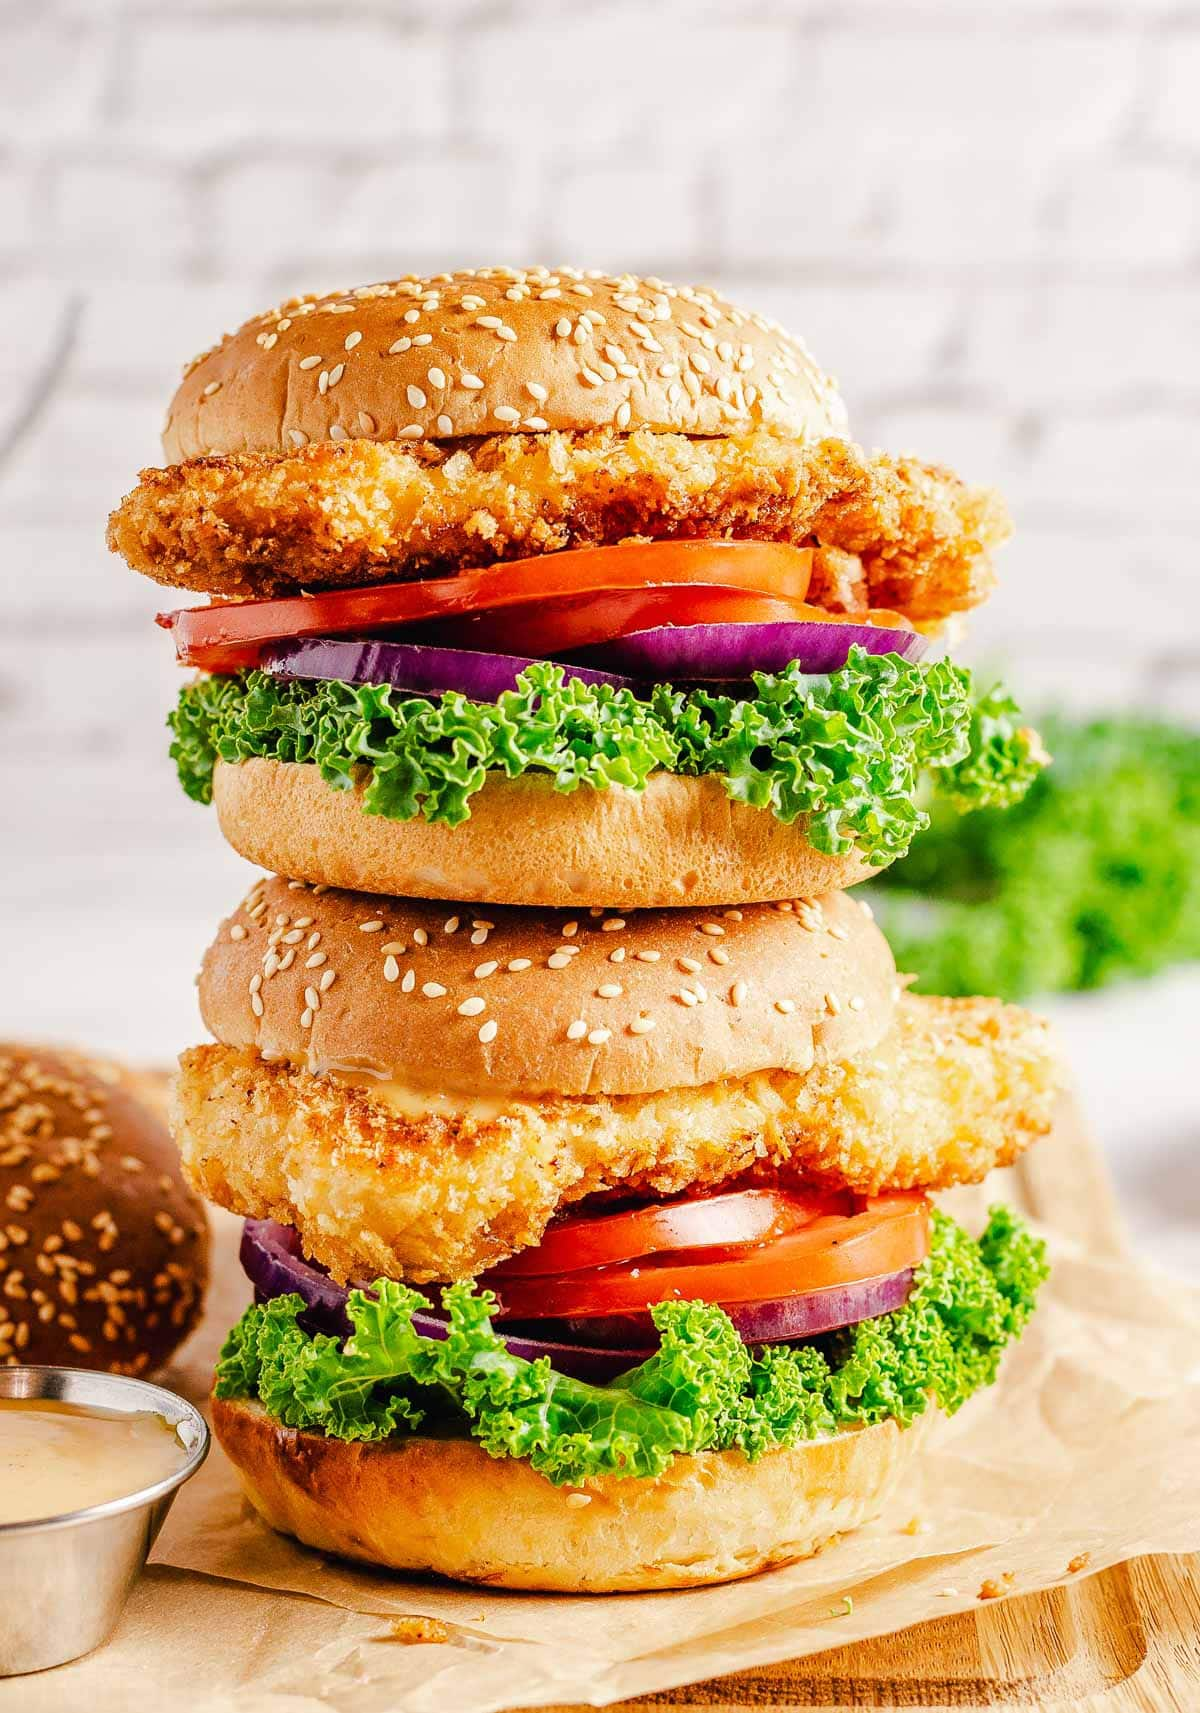 two chicken sandwiches stacked on each other sitting on wood cutting board.